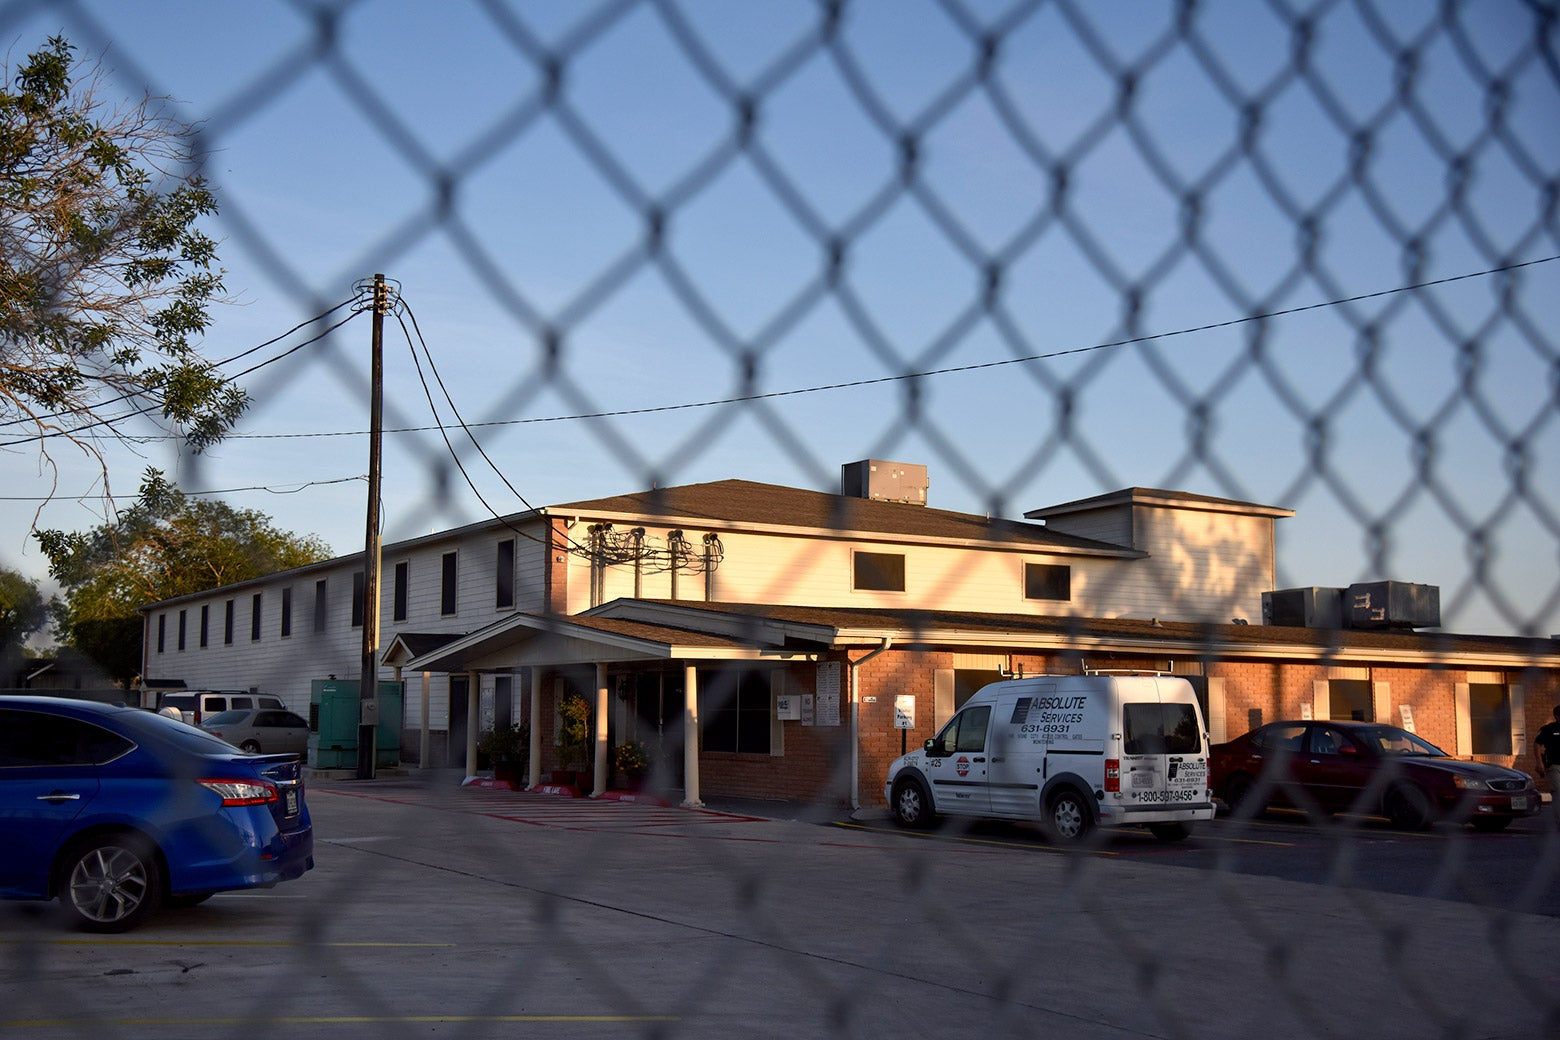 Casa Antigua is a facility run by Southwest Key Programs that houses immigrant children who have been separated from their families, as seen on June 22 in San Benito, Texas.